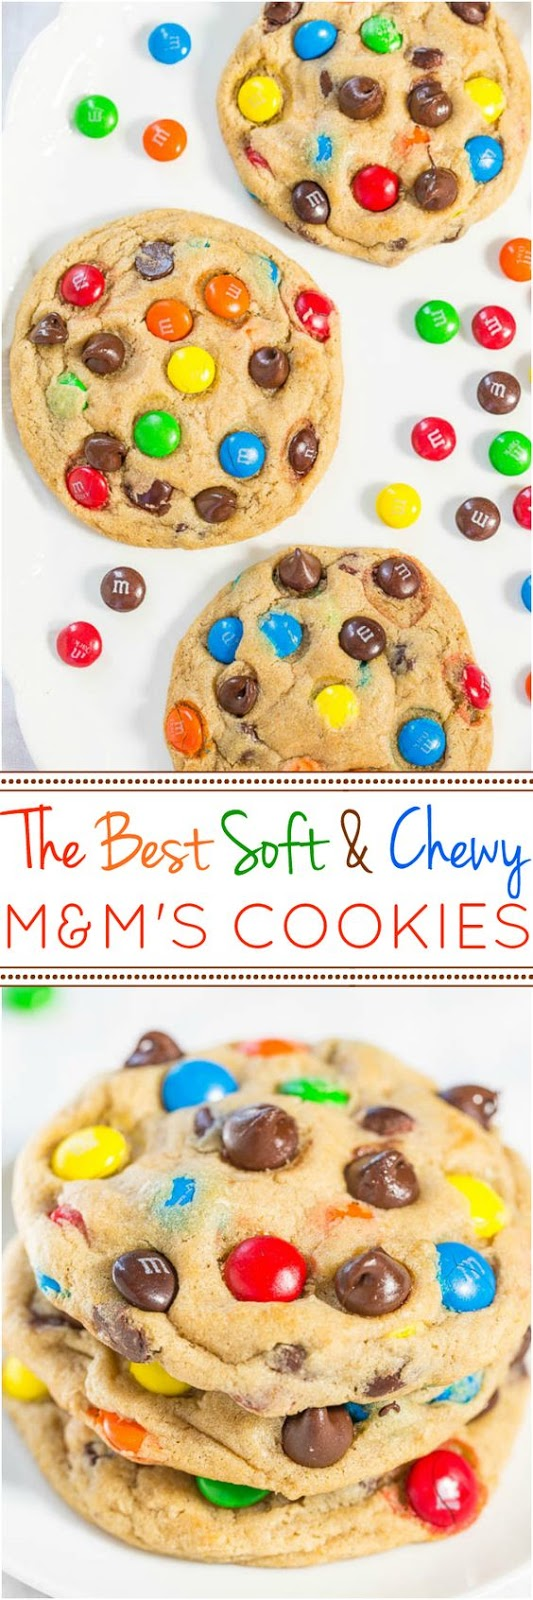 The Best Soft and Chewy MM'S Cookies Recipe